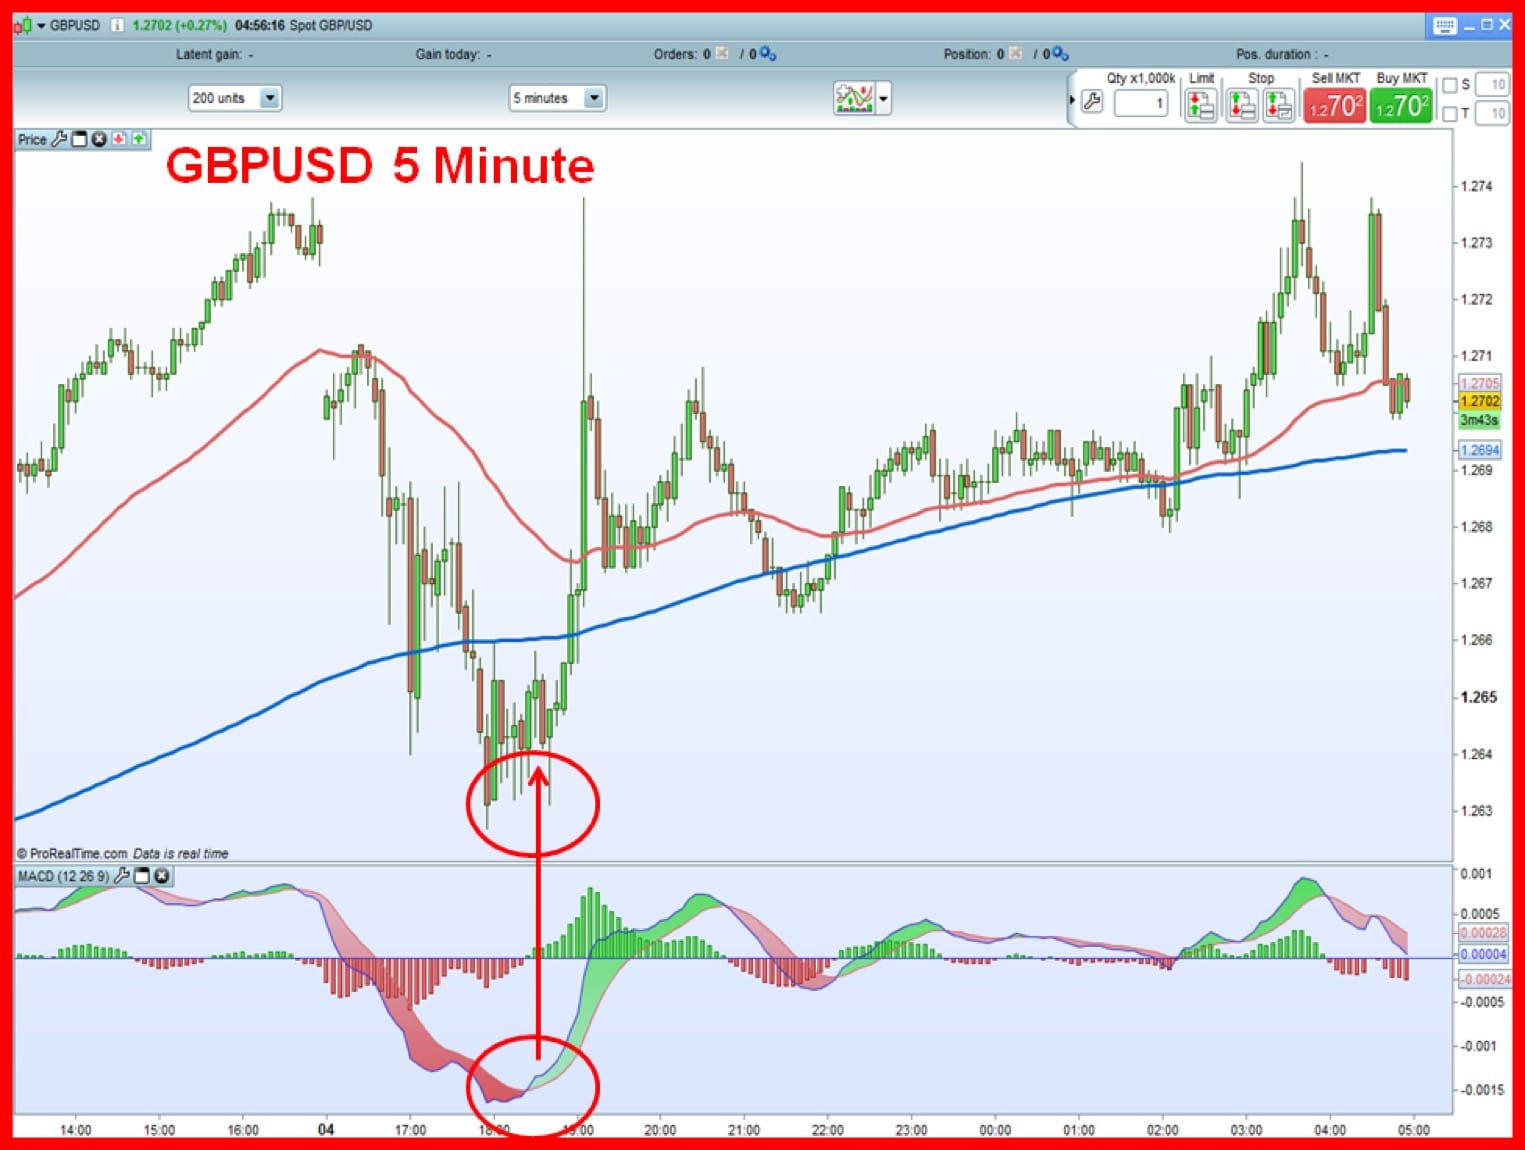 10 See Gbpusd 5 Minute Chart With Macd Cross Signal On It How To Crush The Markets Like The Big Dogs